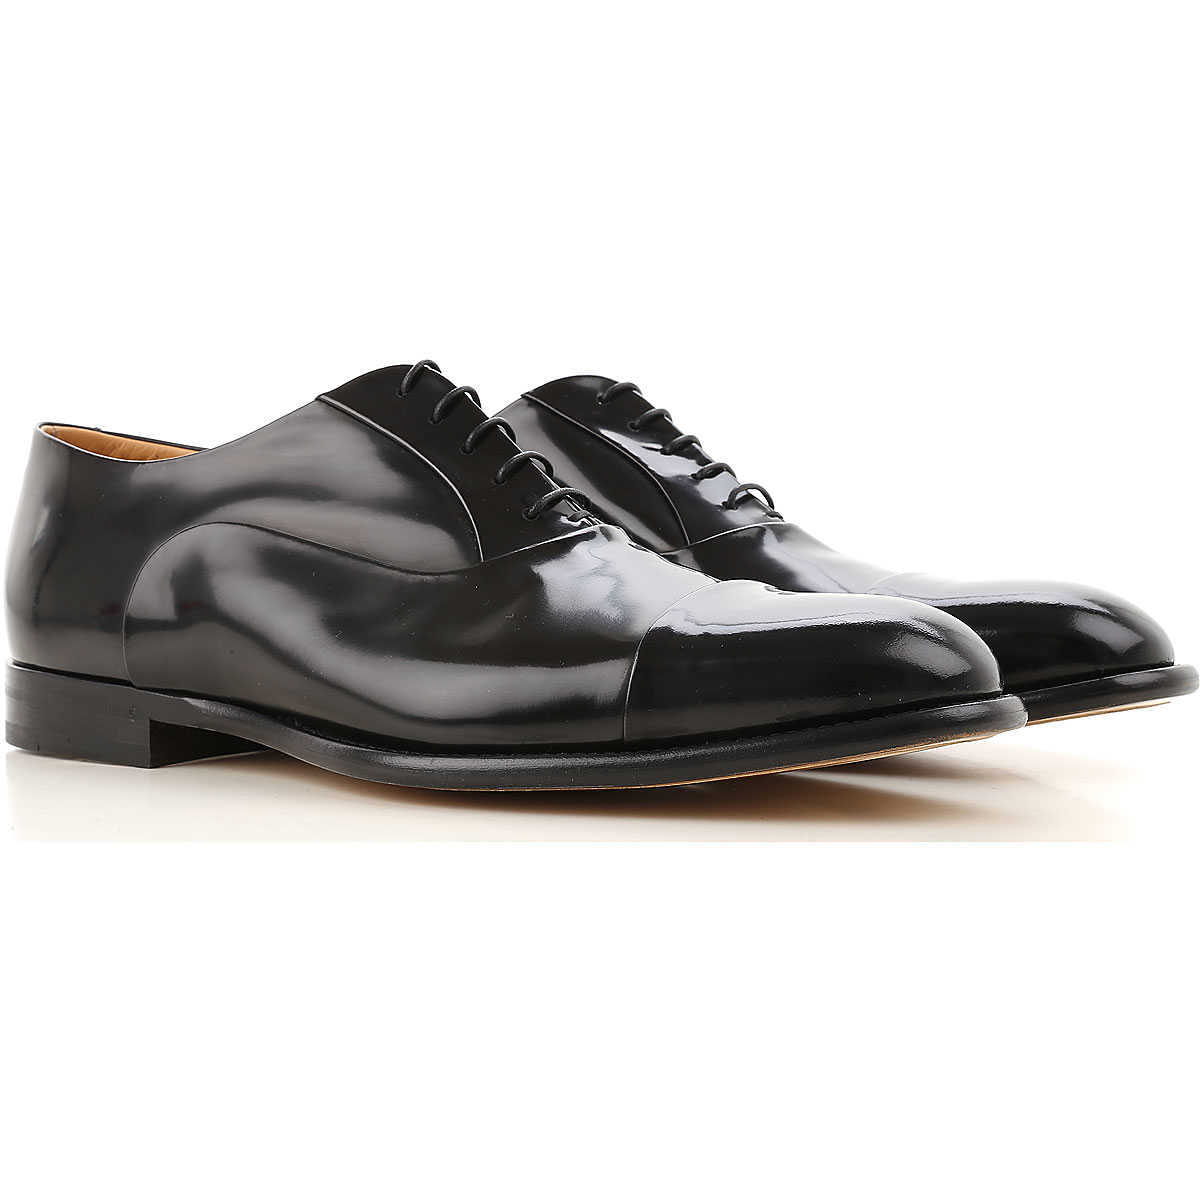 Fabi Lace Up Shoes for Men Oxfords 10.5 8.5 Derbies and Brogues On Sale UK - GOOFASH